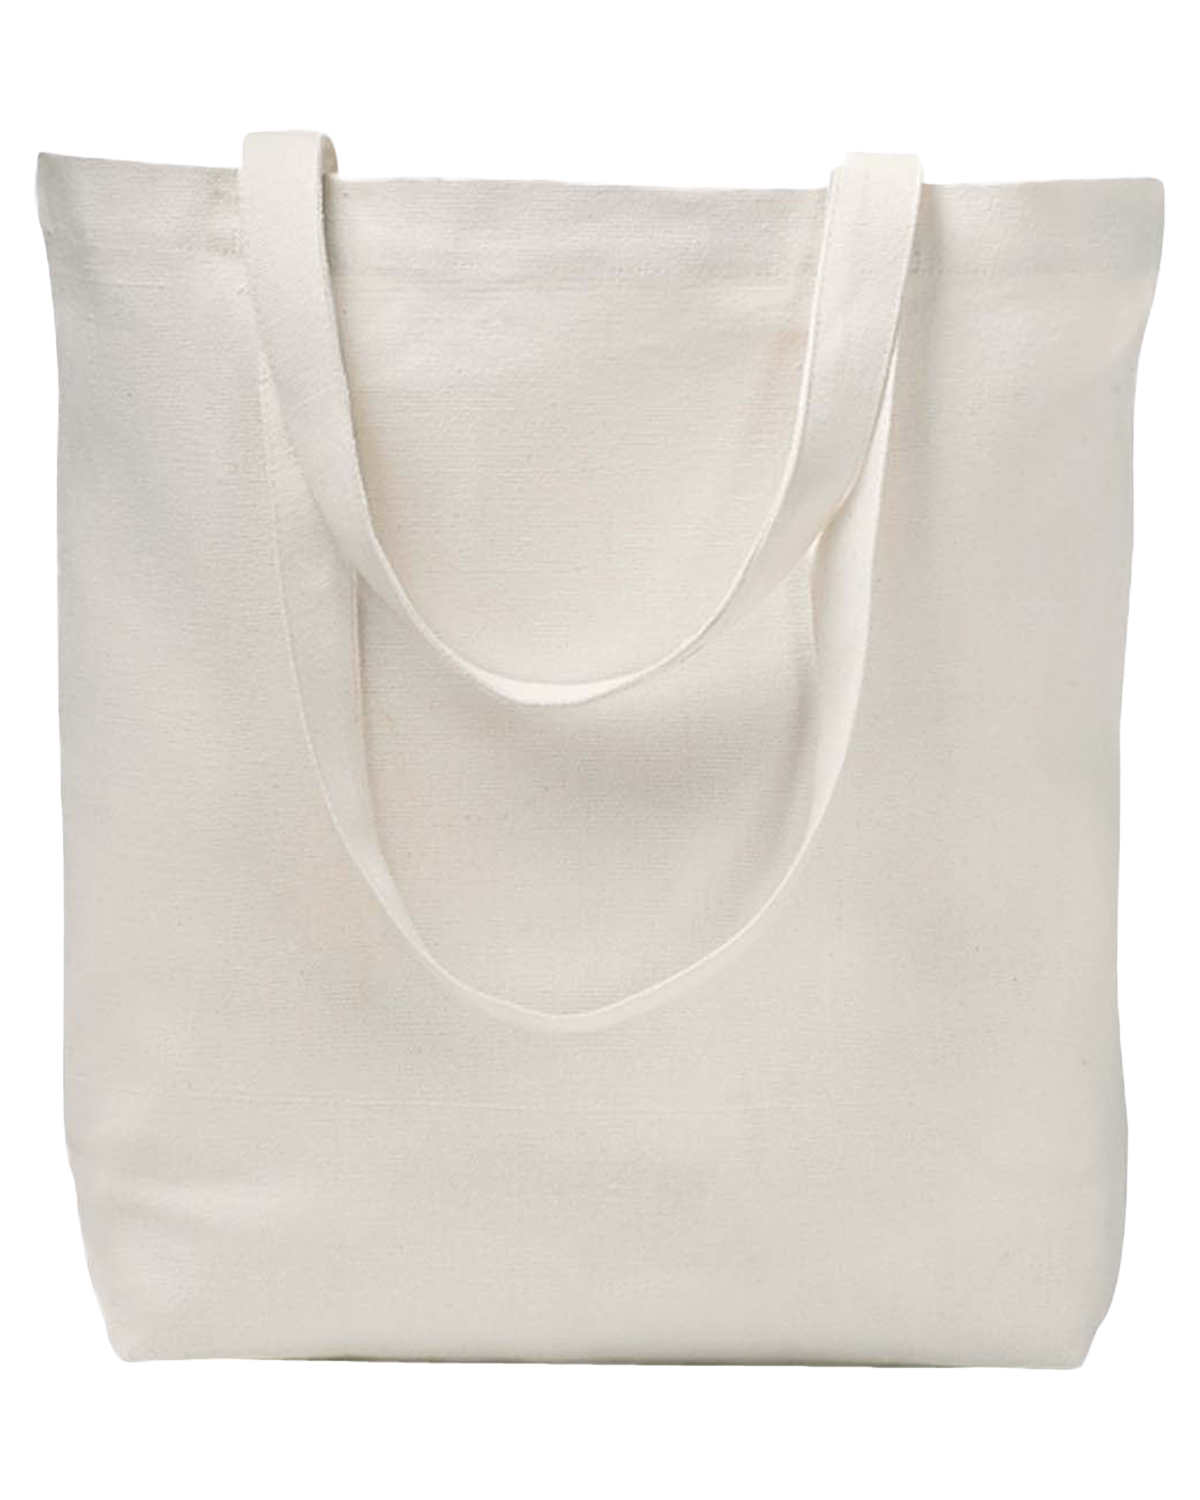 Econscious EC8005 7 oz. Recycled Cotton Everyday Tote Natural at GotApparel